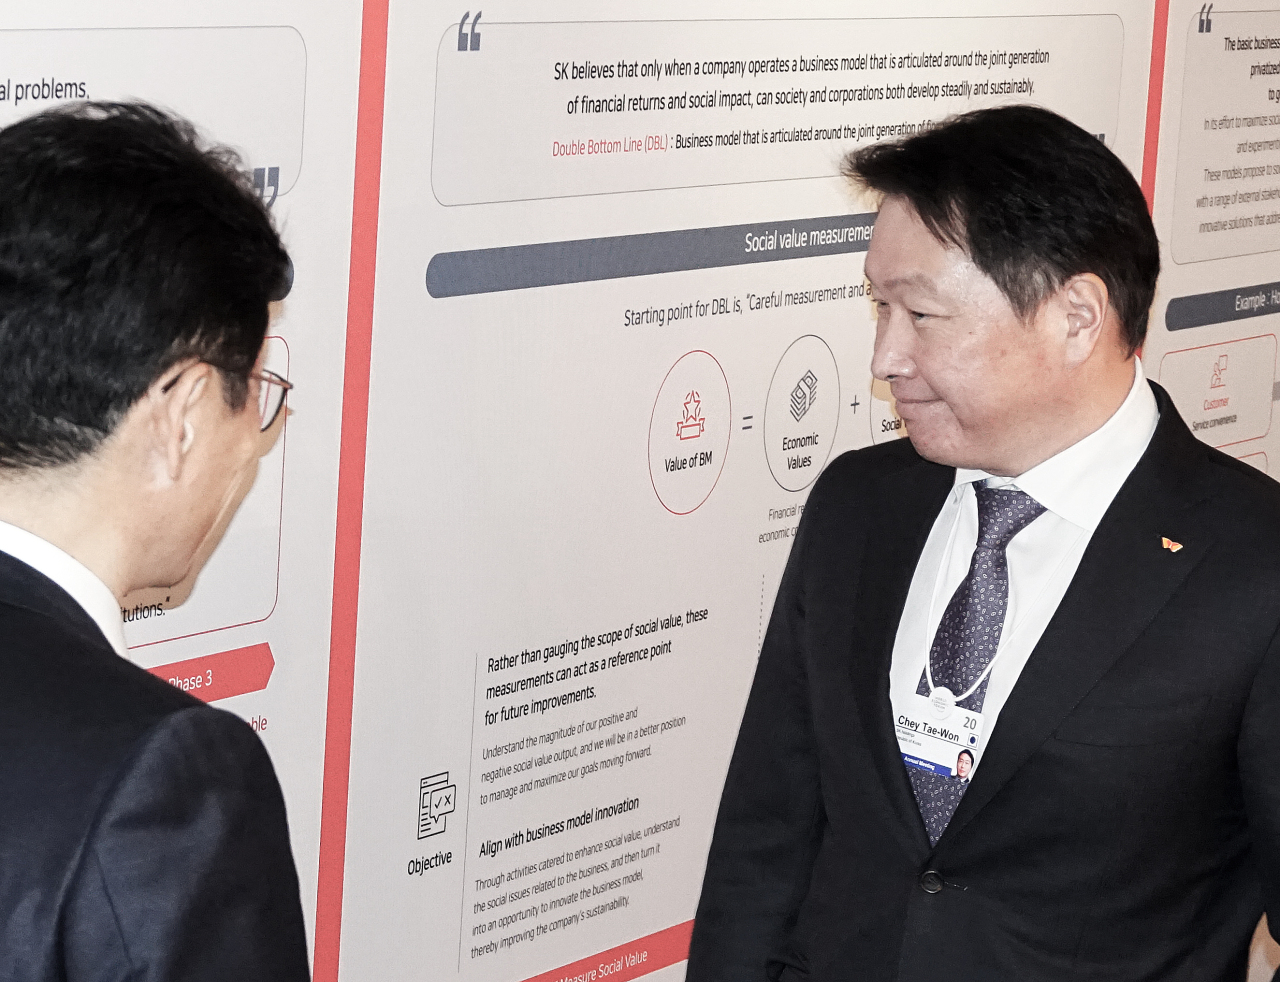 SK Group Chairman Chey Tae-won visits the SK Lounge set up on the occasion of the World Economic Forum in Davos, Switzerland. (SK)